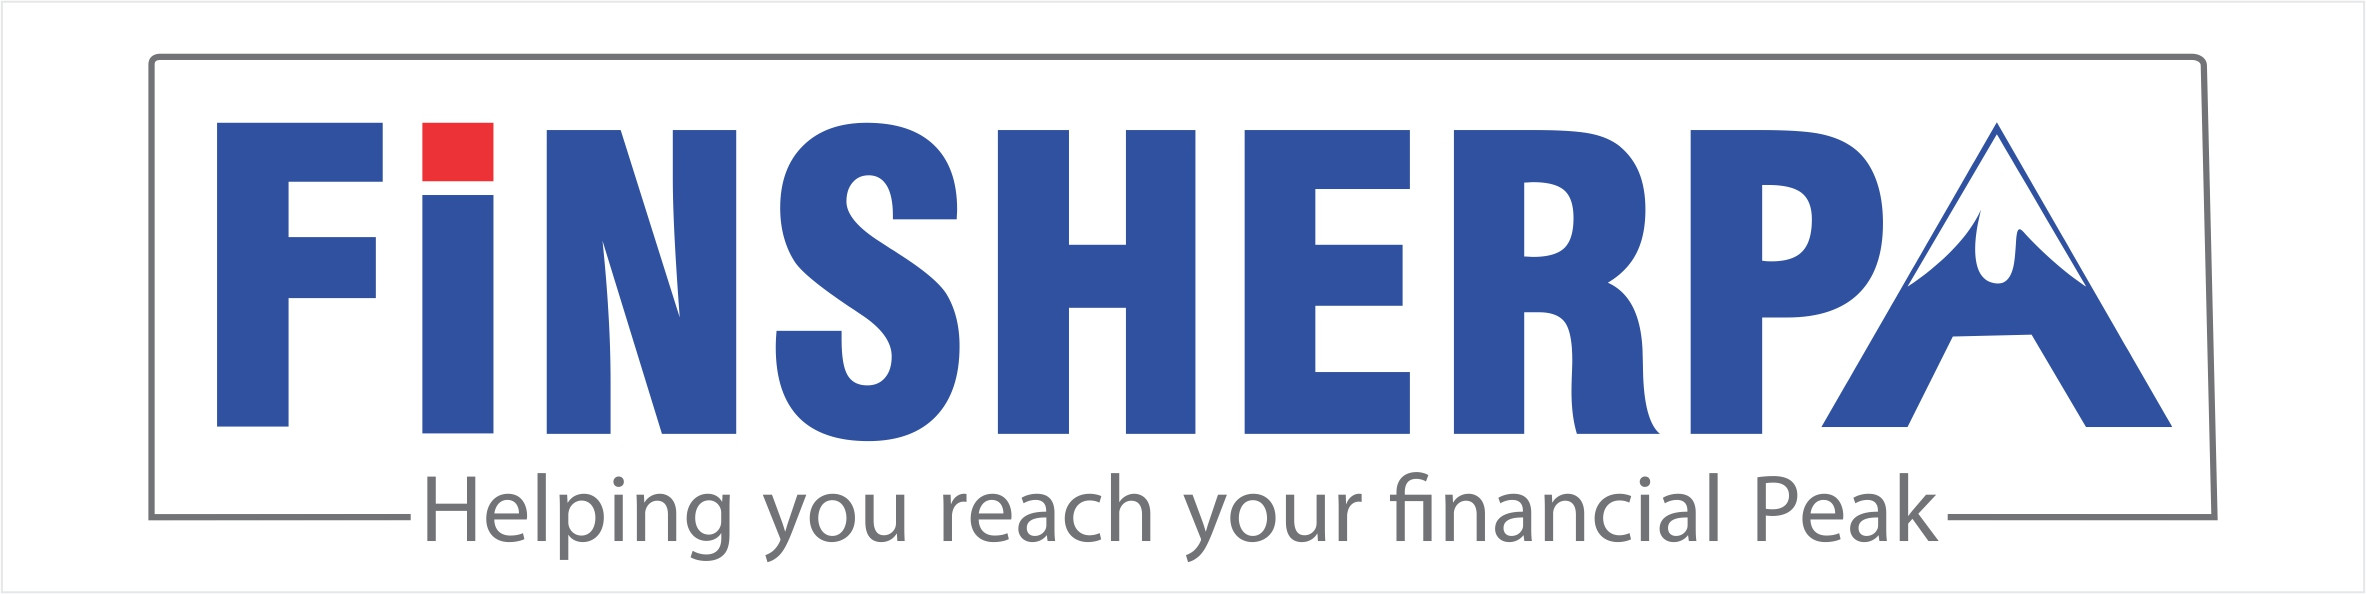 Financial planning service in Chennai | Finsherpa